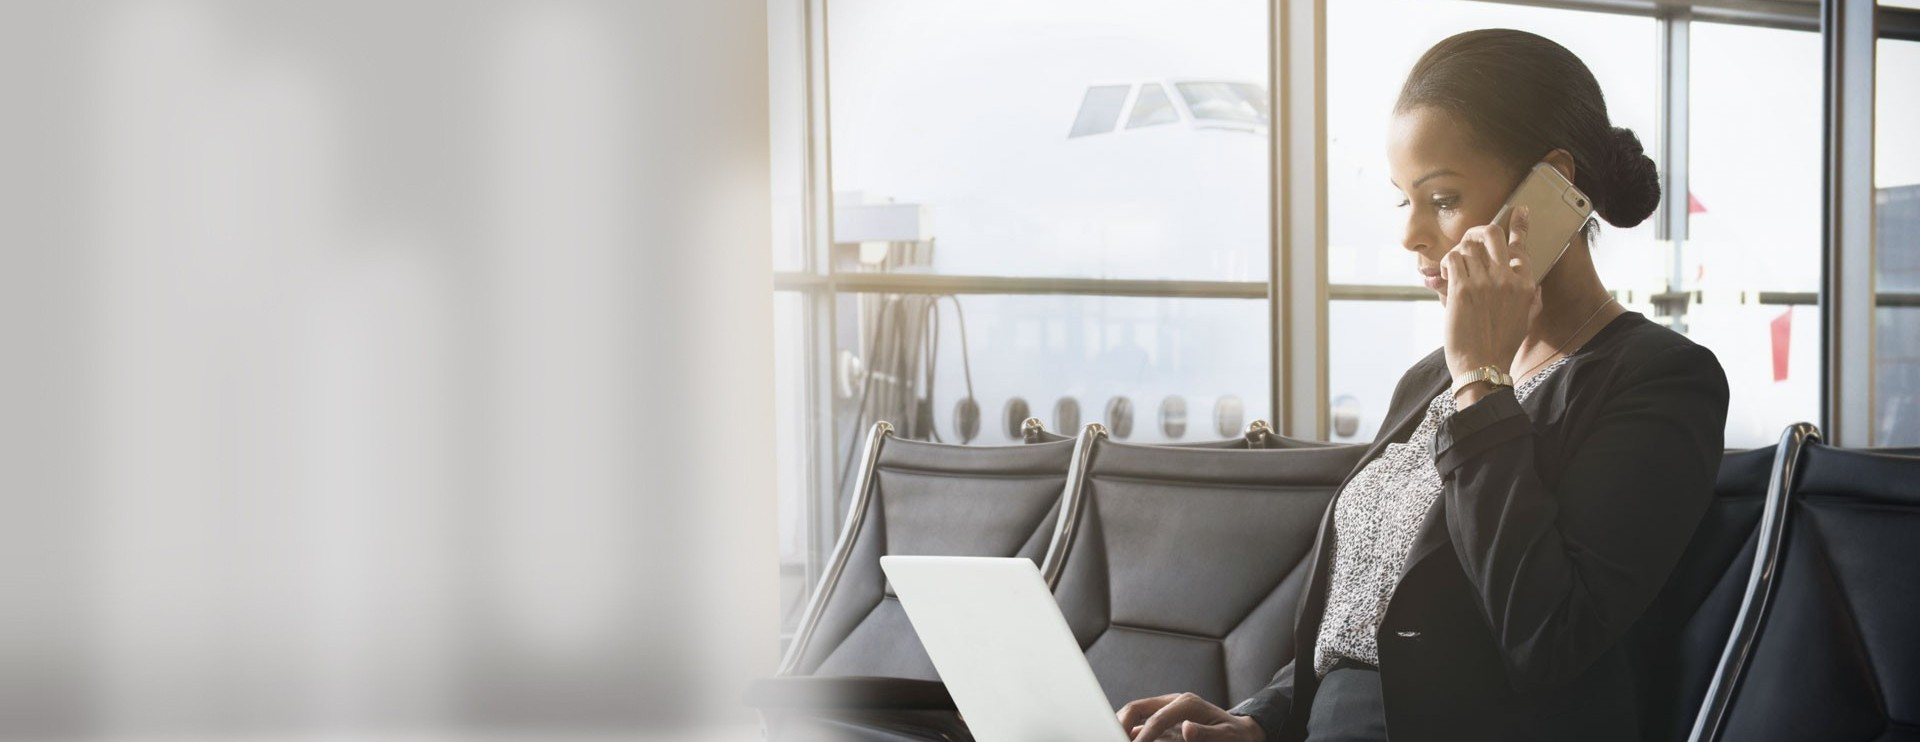 Businesswoman at airport mobile laptop